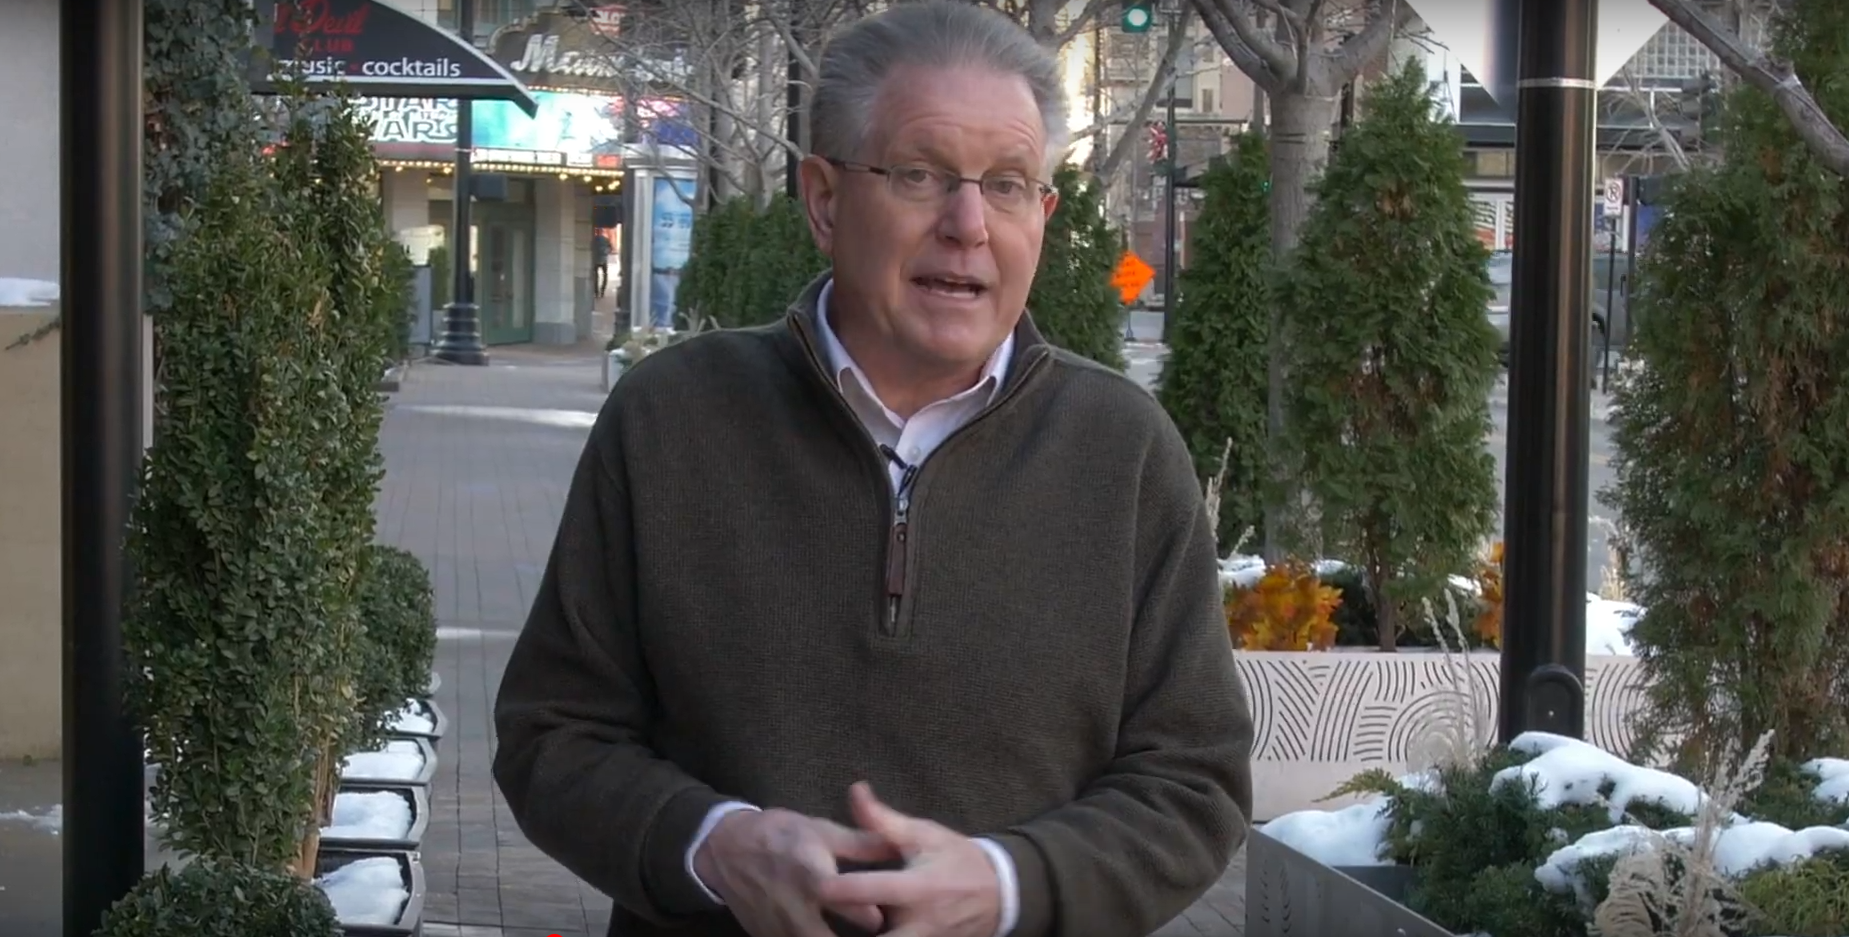 Former WDAF chief meteorologist and current Kansas Sen. Mike Thompson in a video announcing why he has formed a nonprofit called the Academy for Climate and Energy Analysis. (Screenshot)